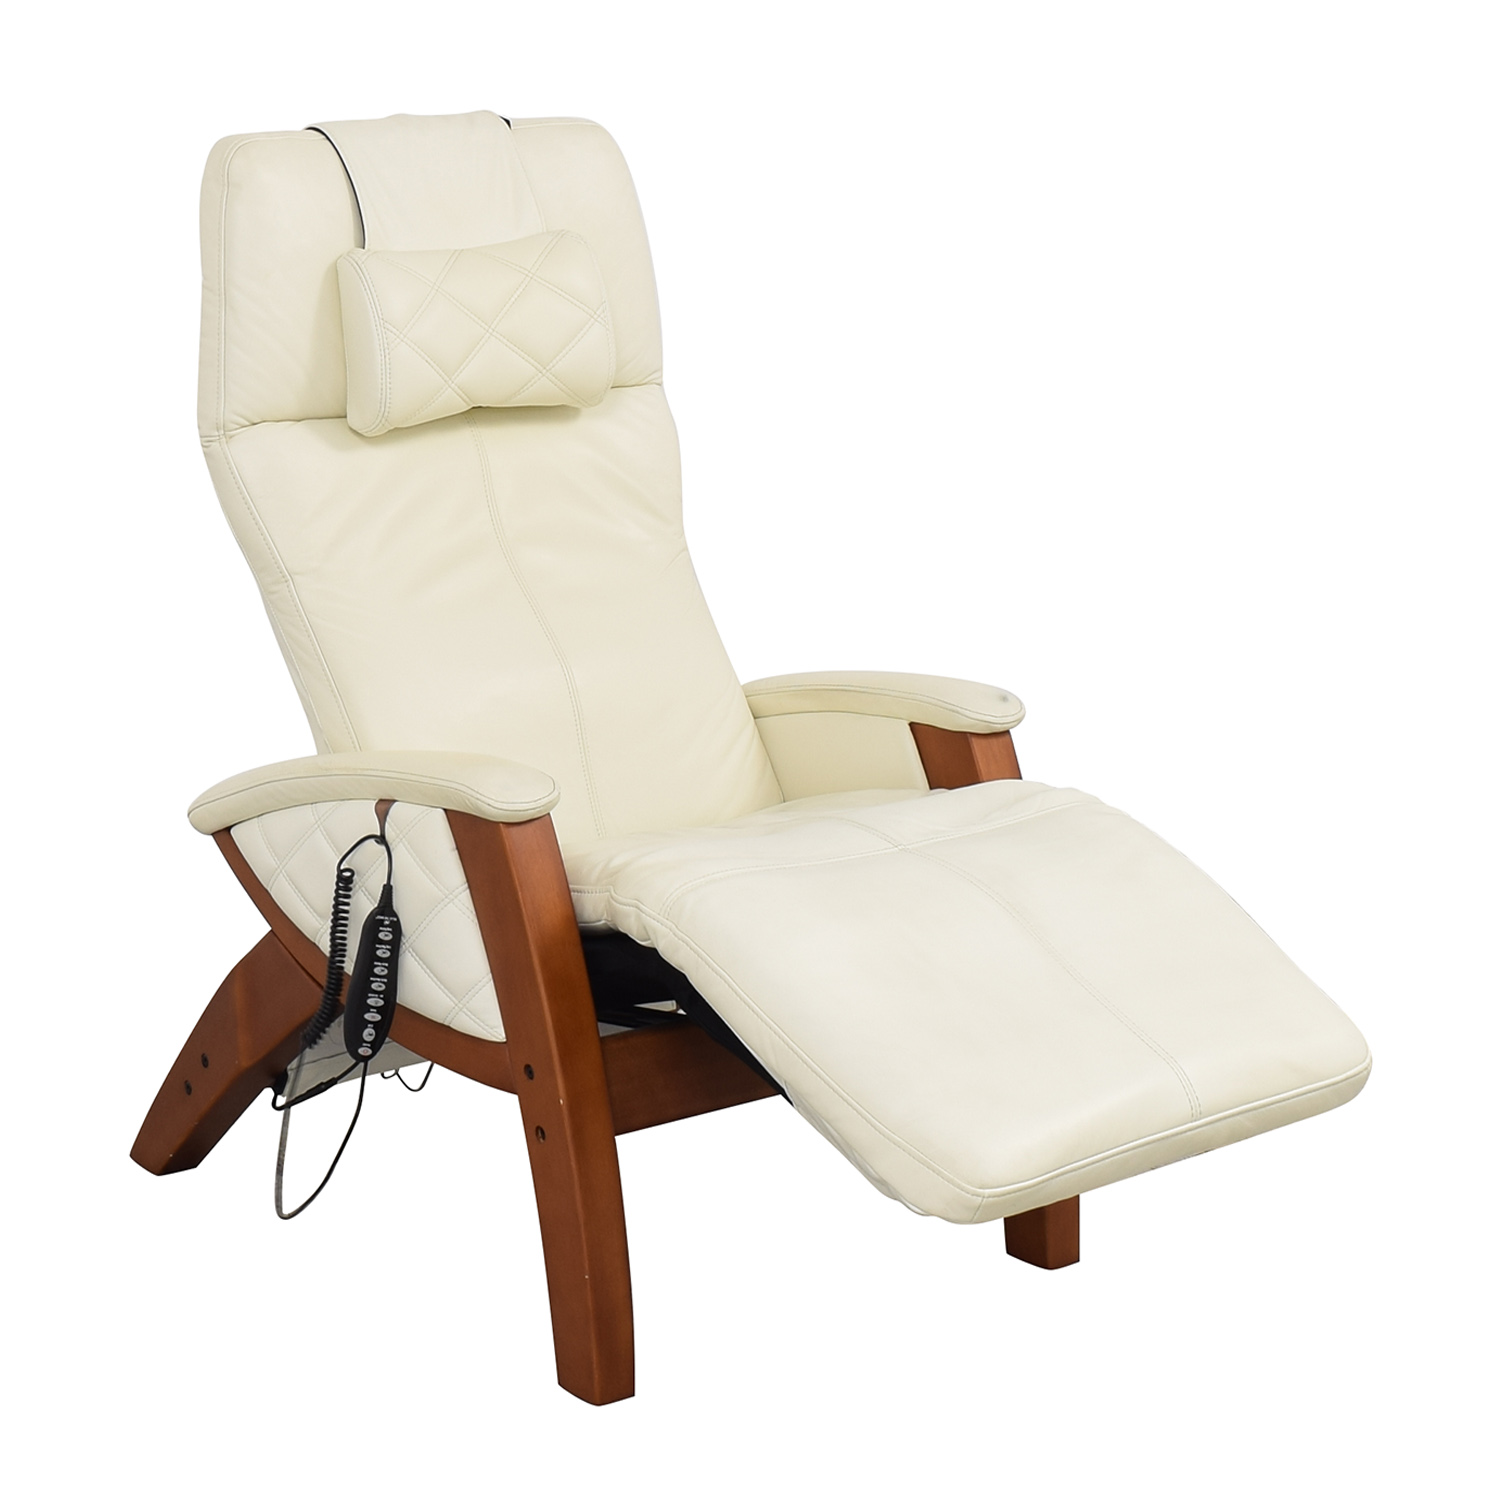 Relax The Back Relax The Back Electro Lounge Chair Recliners